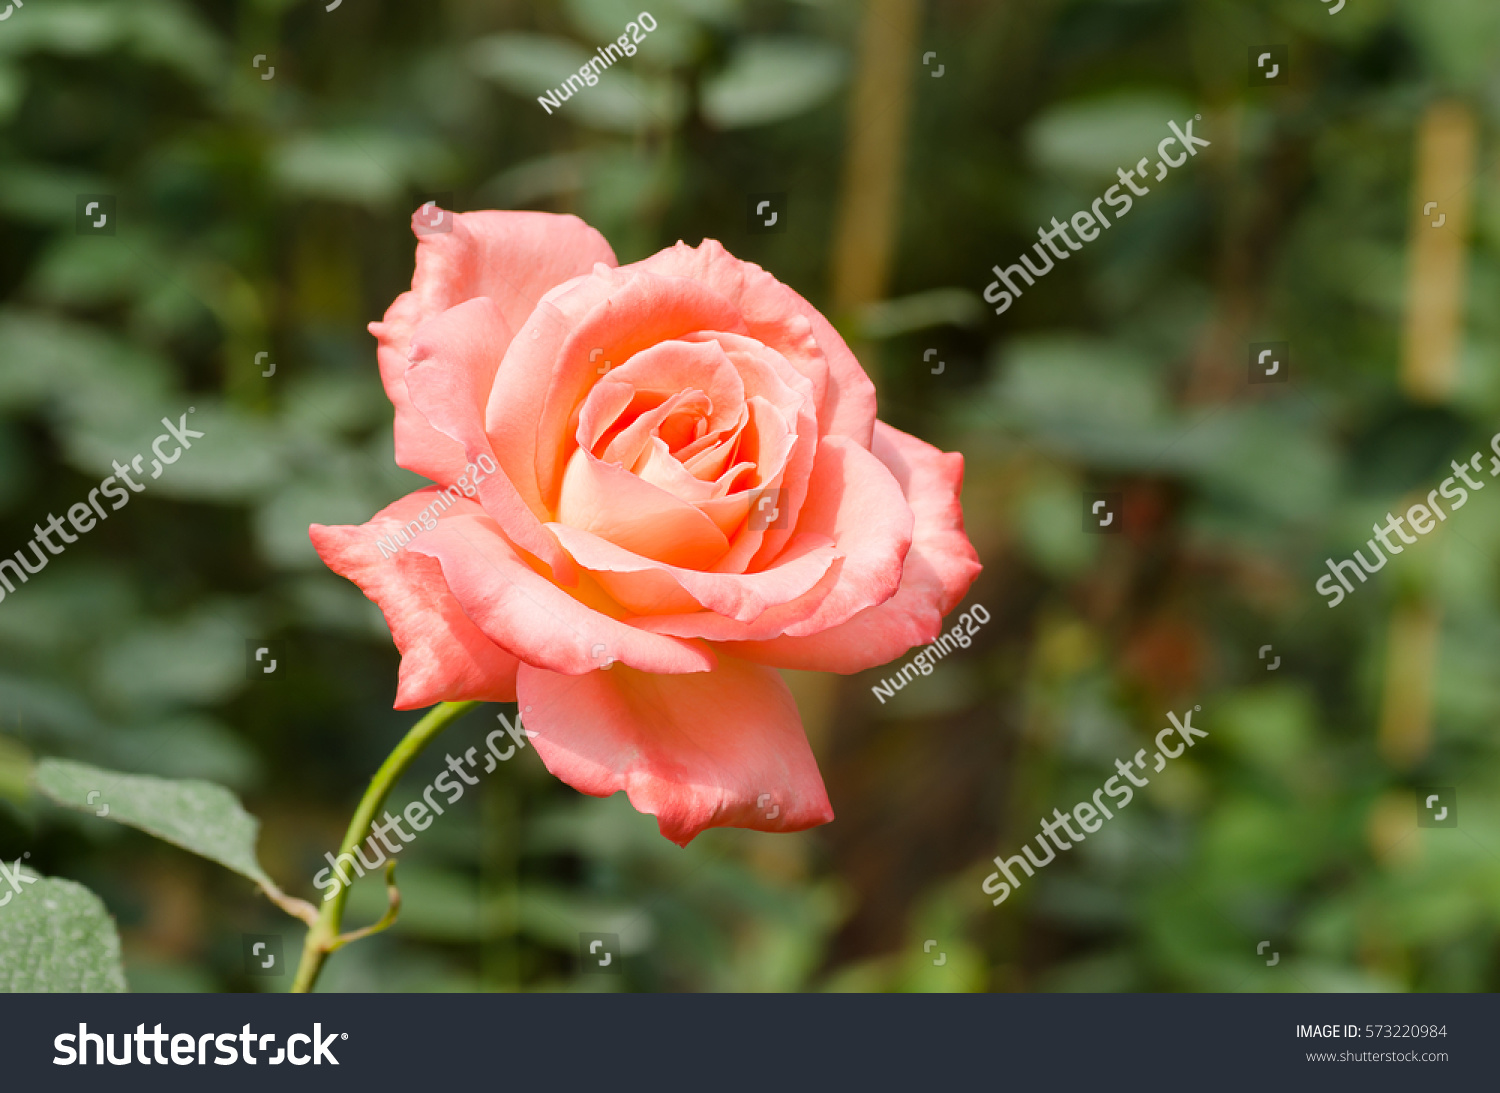 Rose in the garden rose flowers decoration floral background ez rose in the garden rose flowers decoration floral background ez canvas izmirmasajfo